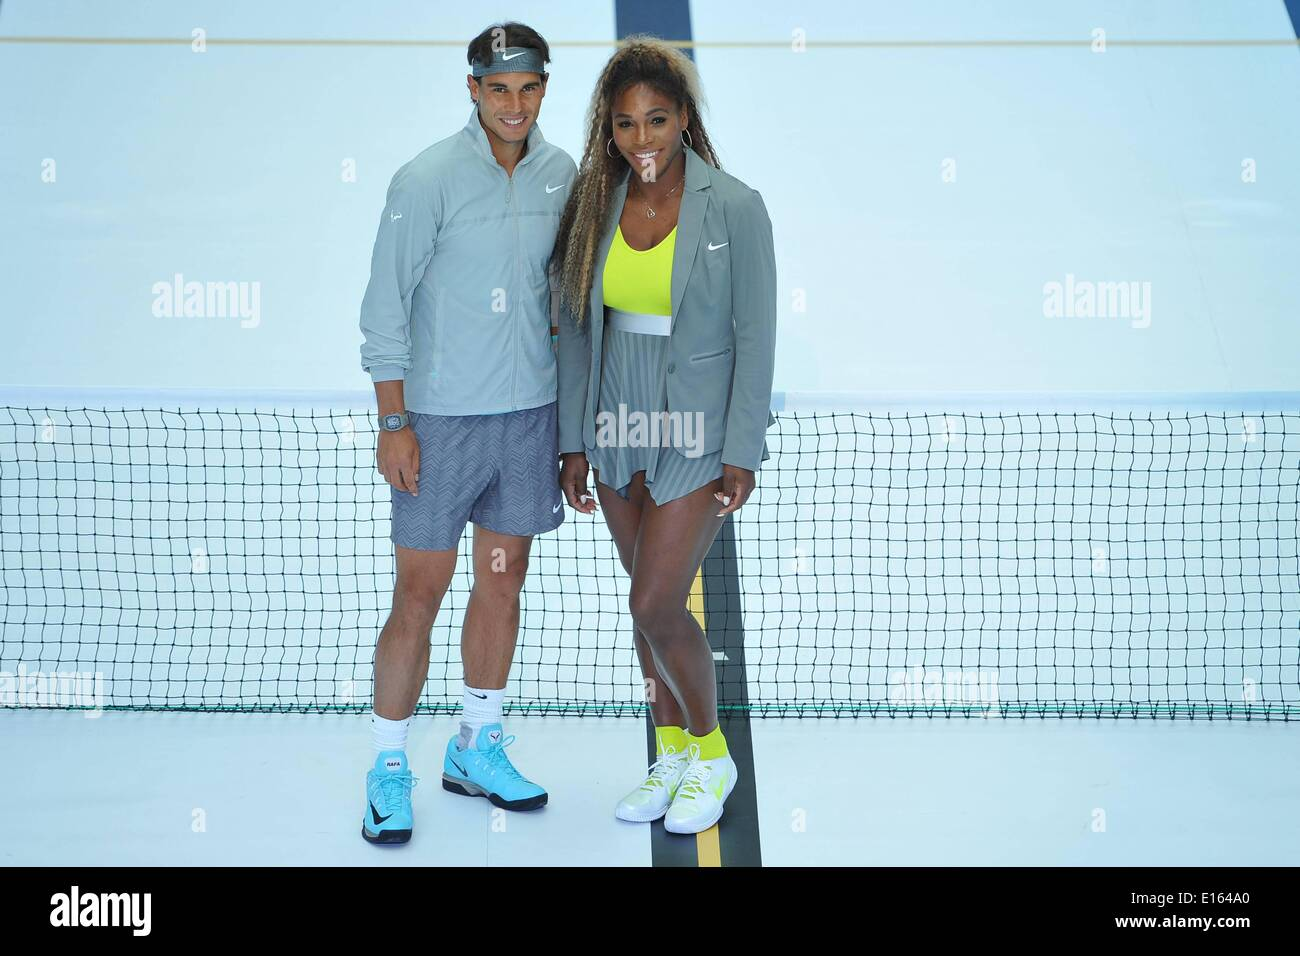 Paris, France. 23rd May, 2014. Molitor Swimming Pool, Paris, France. 23rd May, 2014. US tennis player Serena Williams (L) and Spain's tennis player Rafael Nadal are pictured after exchanging balls on a tennis court set up in a swimming pool at the Molitor luxury swimming pool complex in Paris as part of a Nike Tennis promotion Credit:  Action Plus Sports/Alamy Live News - Stock Image